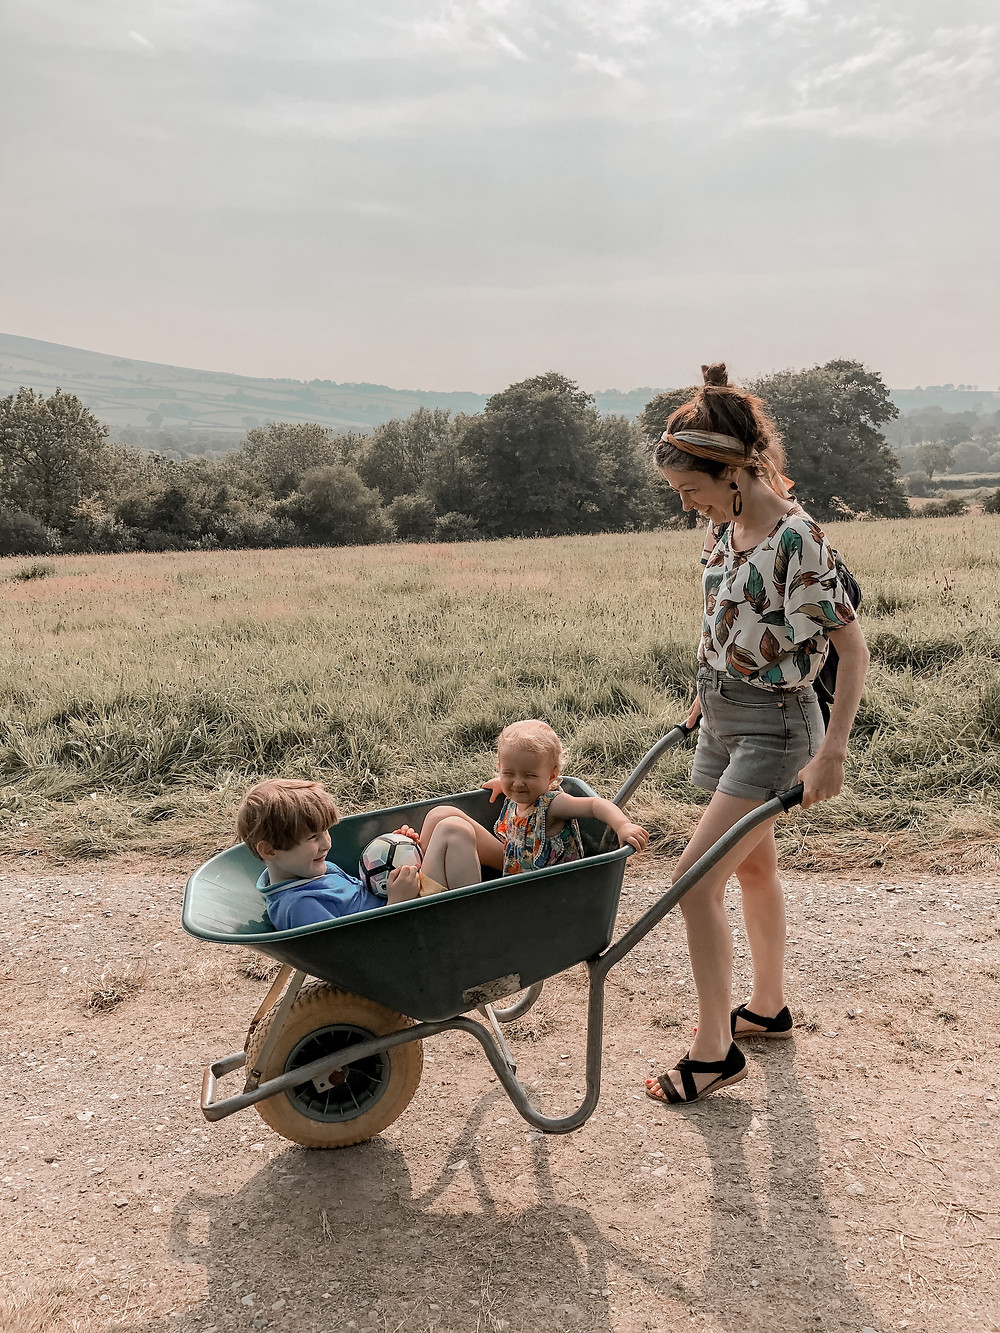 Mum pushing two children in a wheelbarrow at Top of the Woods Camping & Glamping, Pembrokeshire Wales.